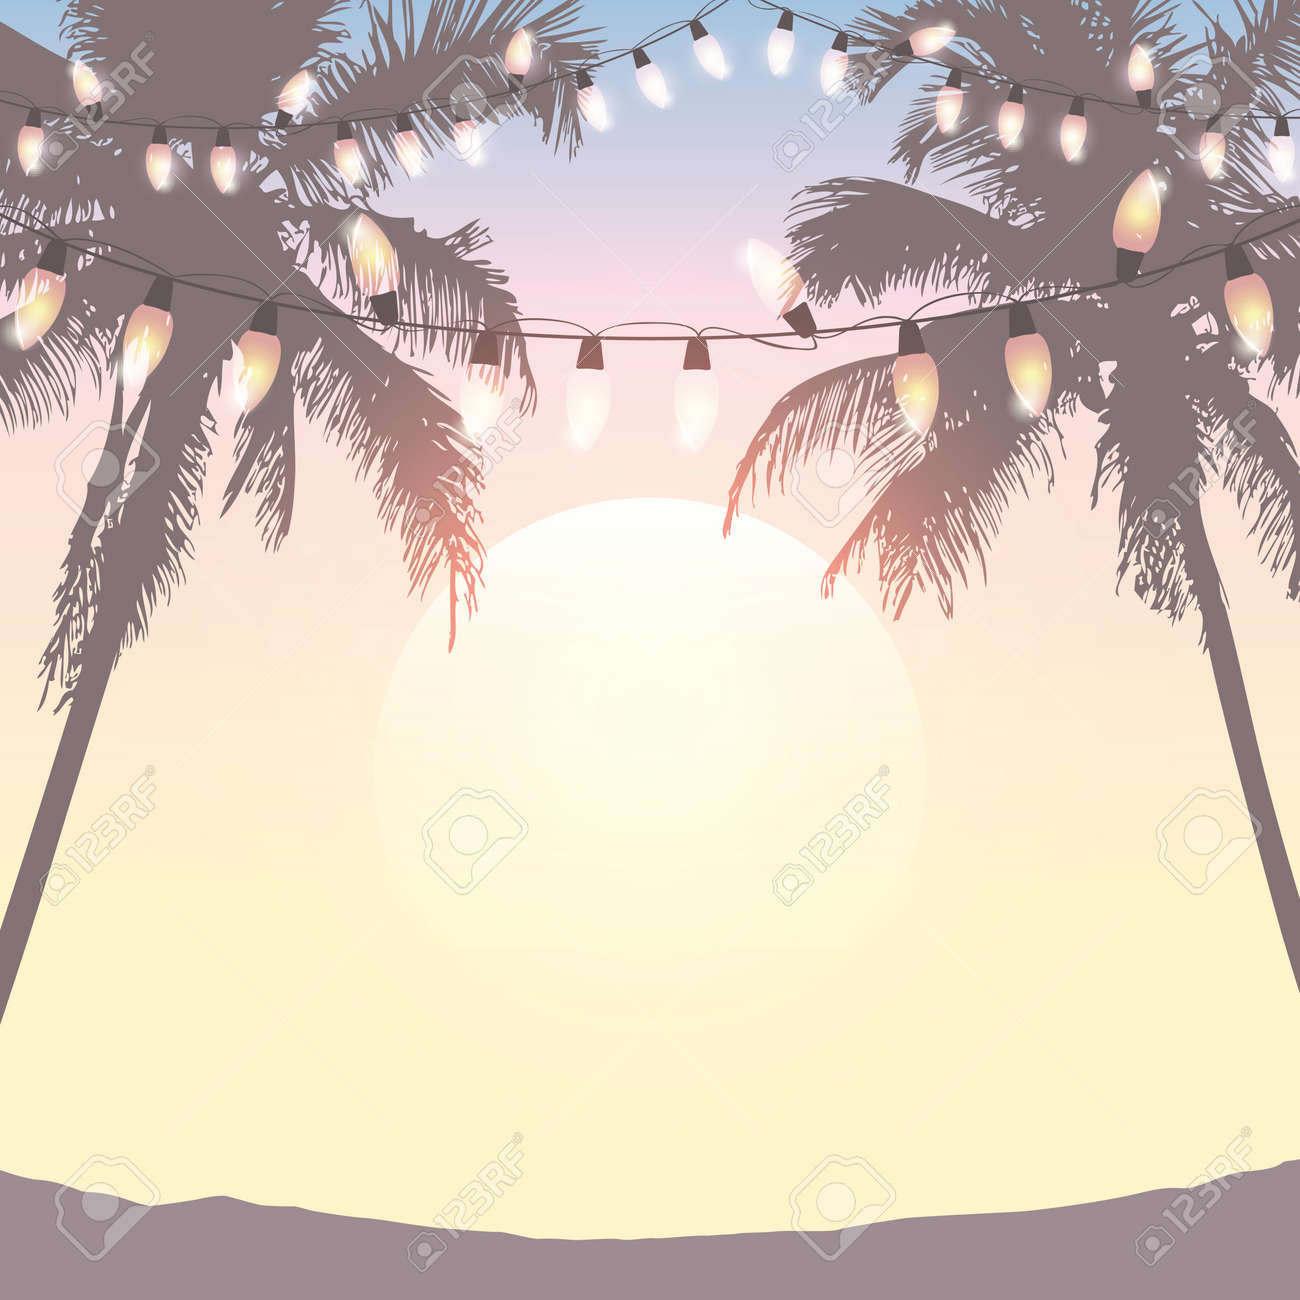 summer holiday design sea at sunset with fairy light and palm trees - 169841415